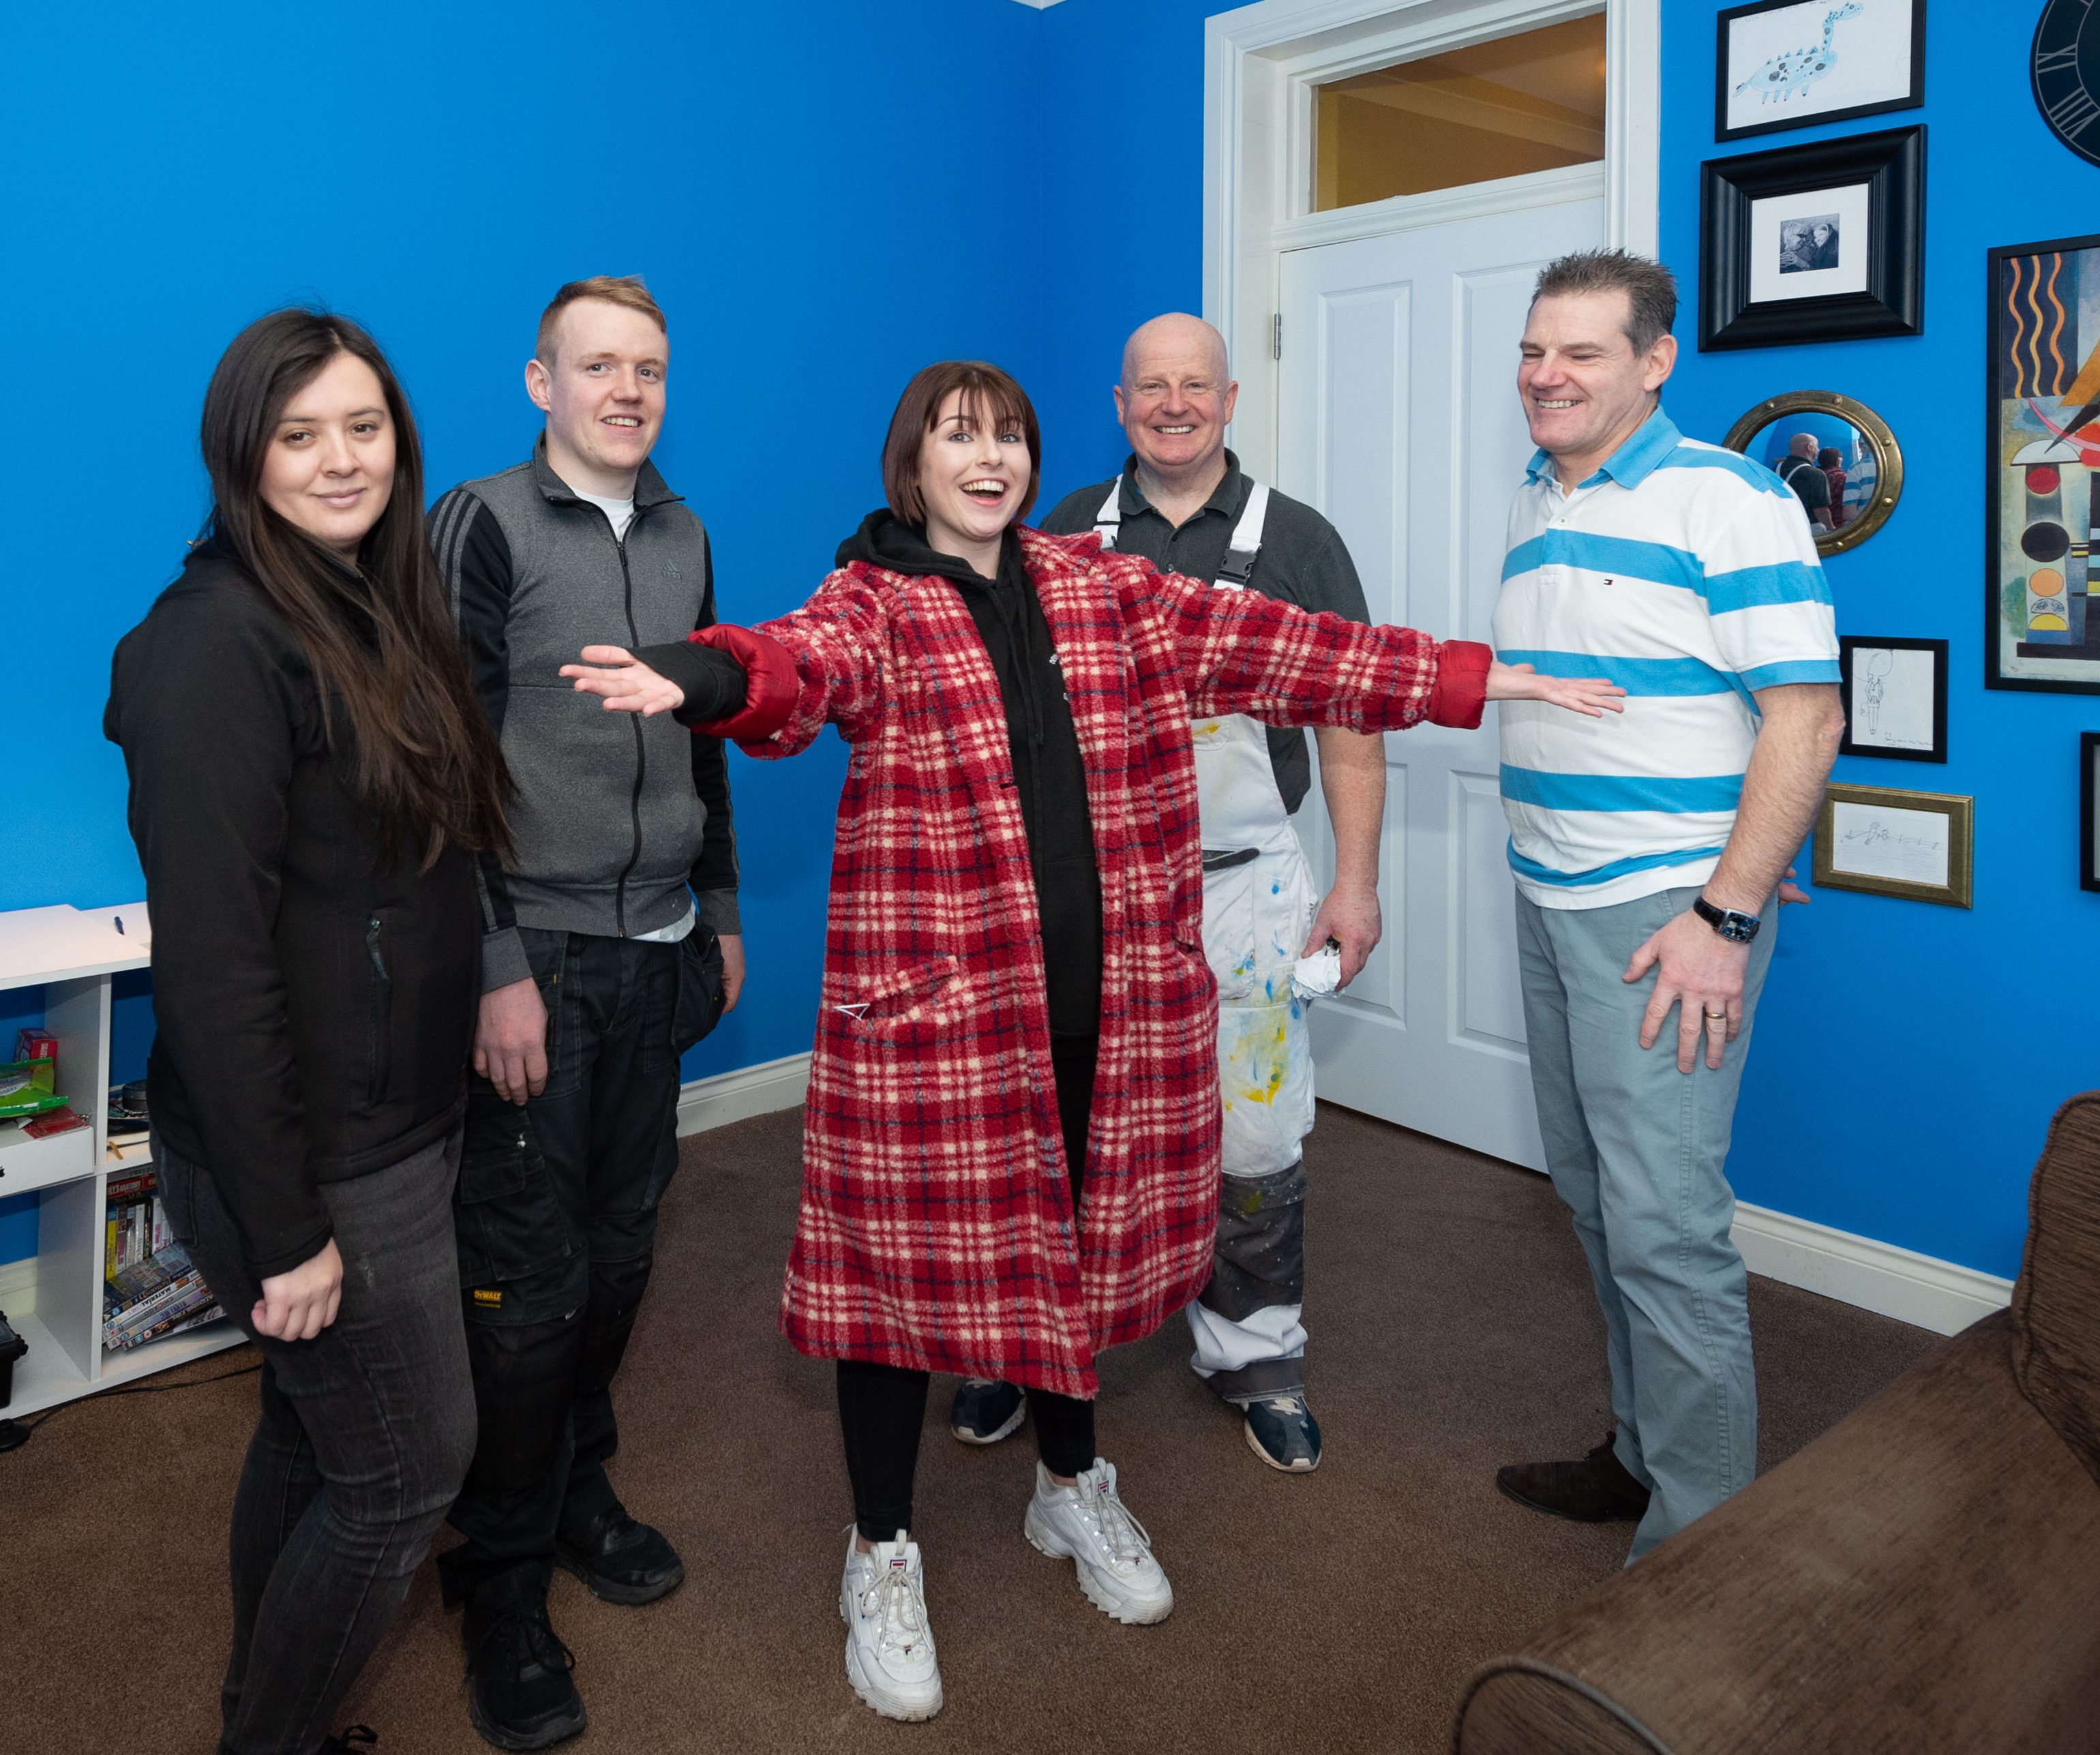 We announce our first corporate partnership to benefit Care Experienced people